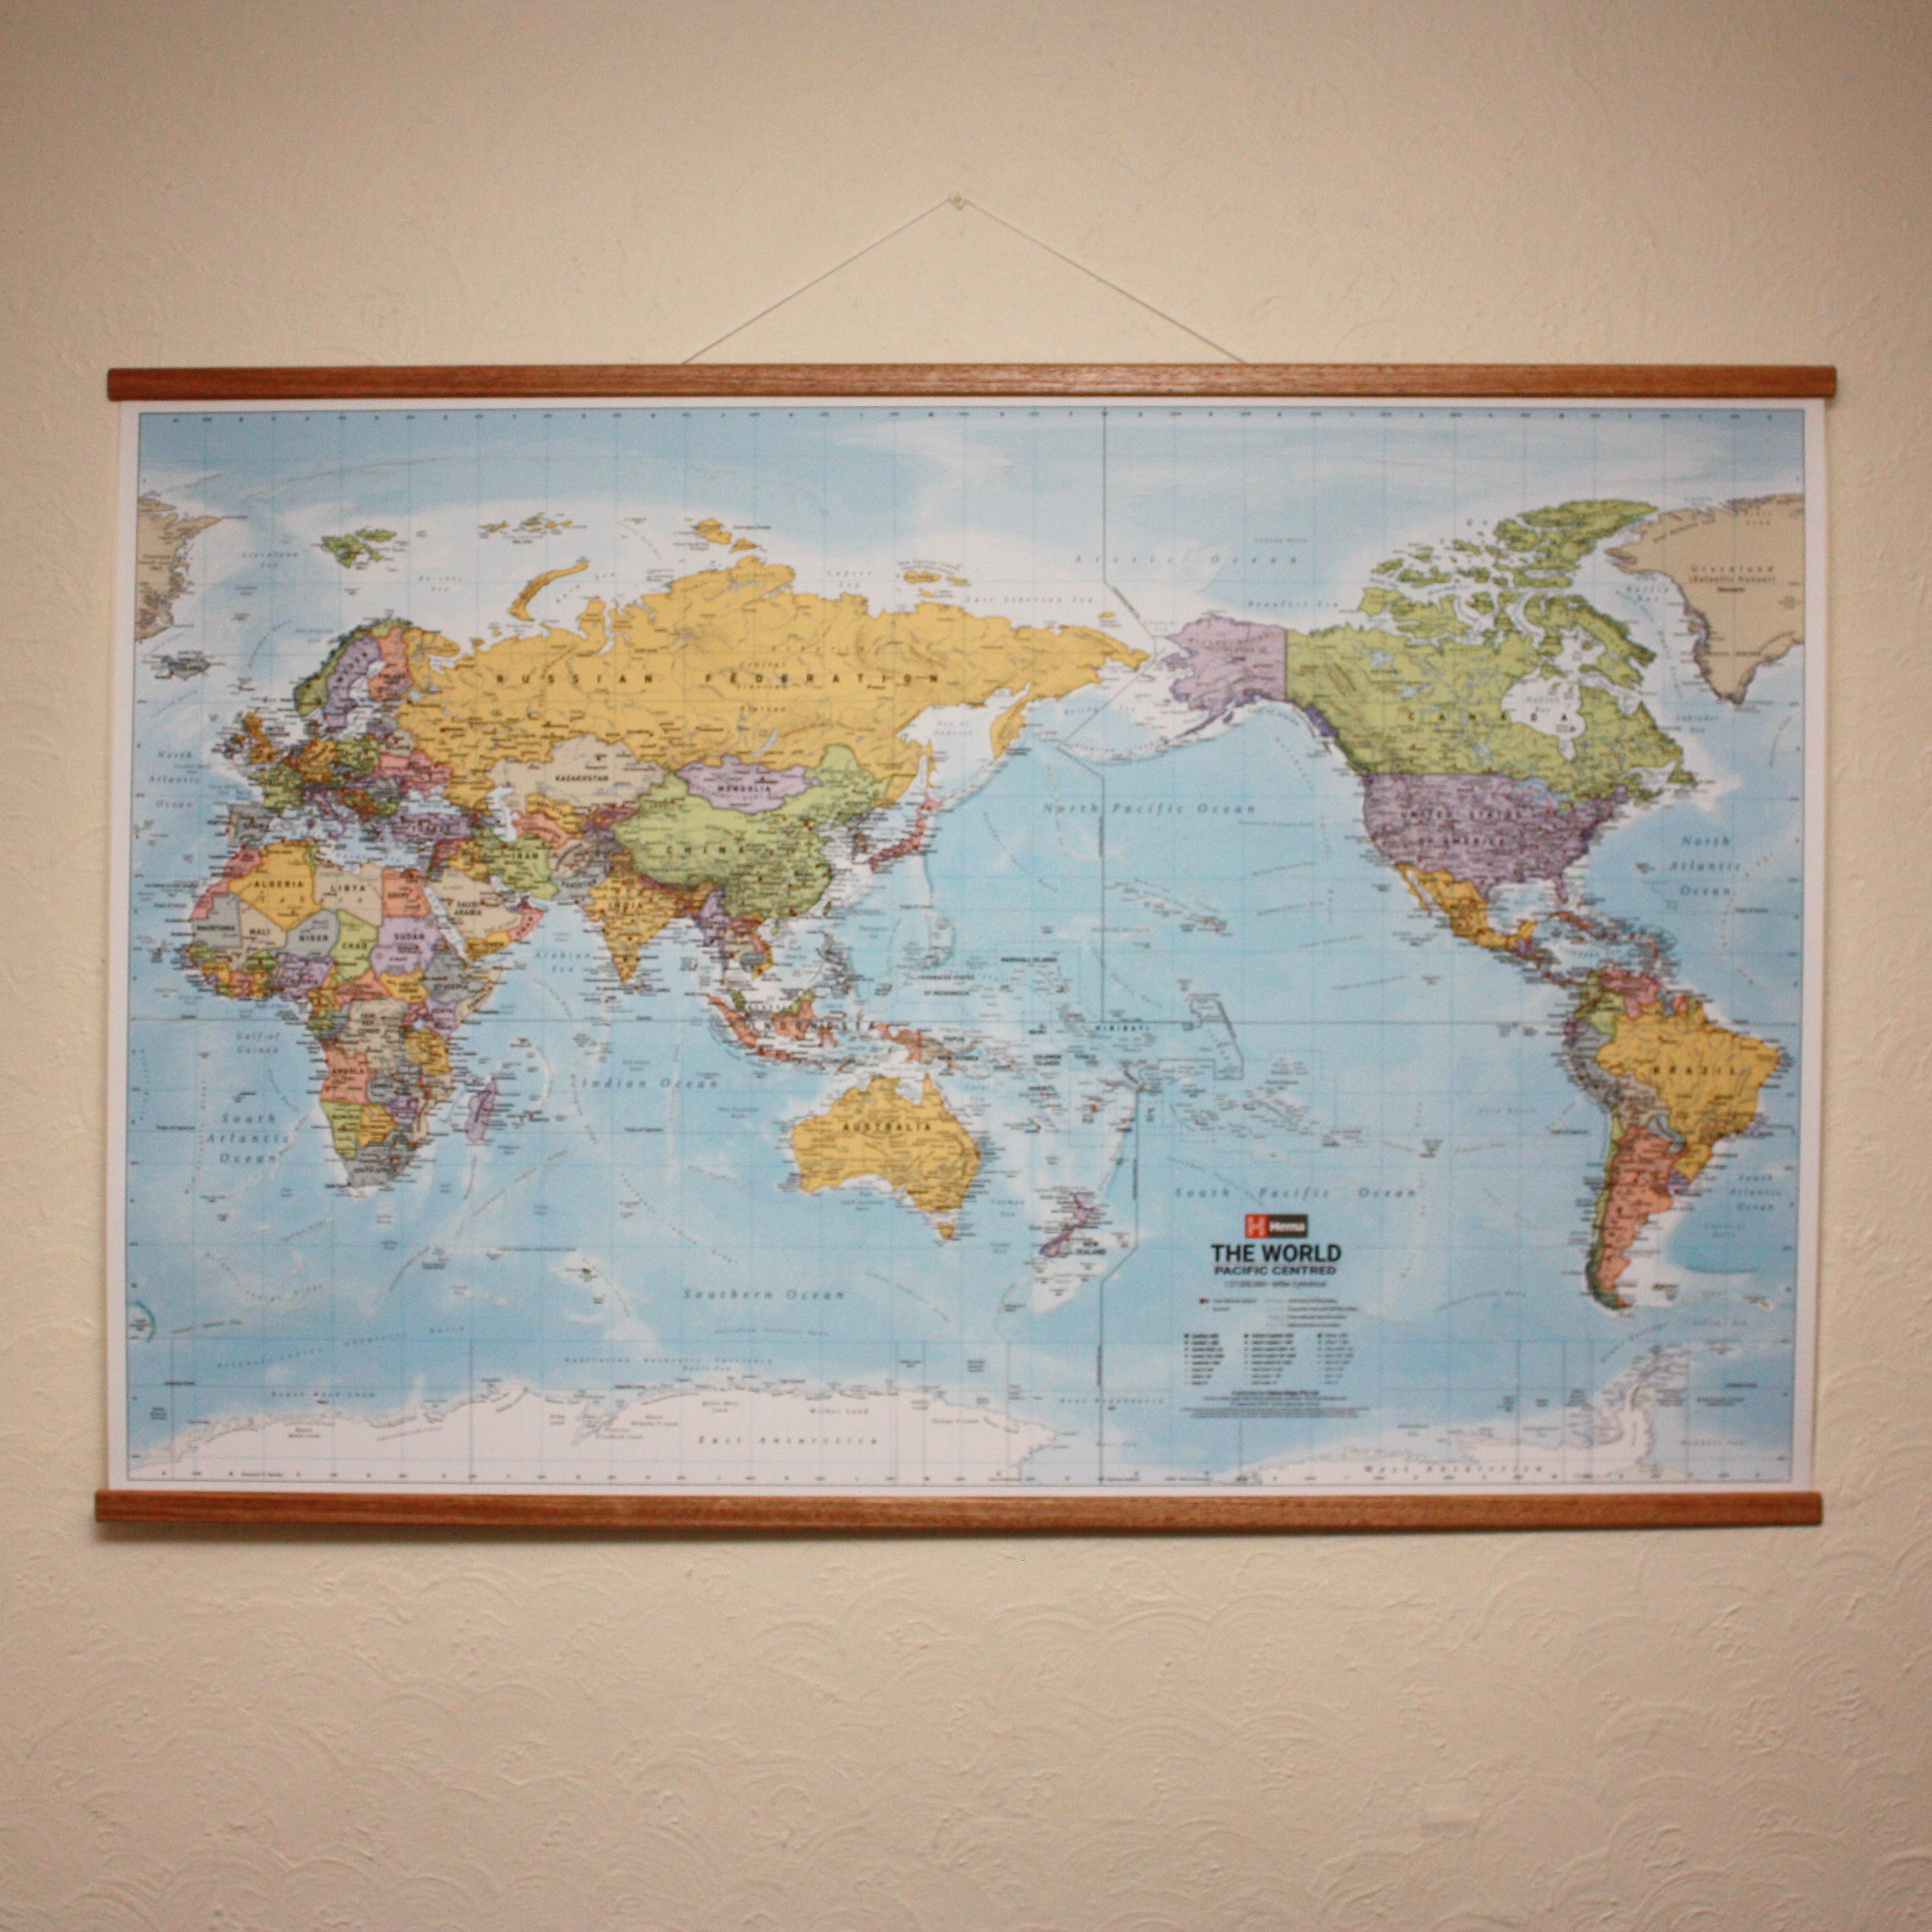 World Wall Map with Timber Hanging Rails - Hema on map mirror, map skirt, map accessories, map of downtown denver rtd, map bag, map scrapbook, map chair, map hwy 224 clackamas 32nd, map plastic,